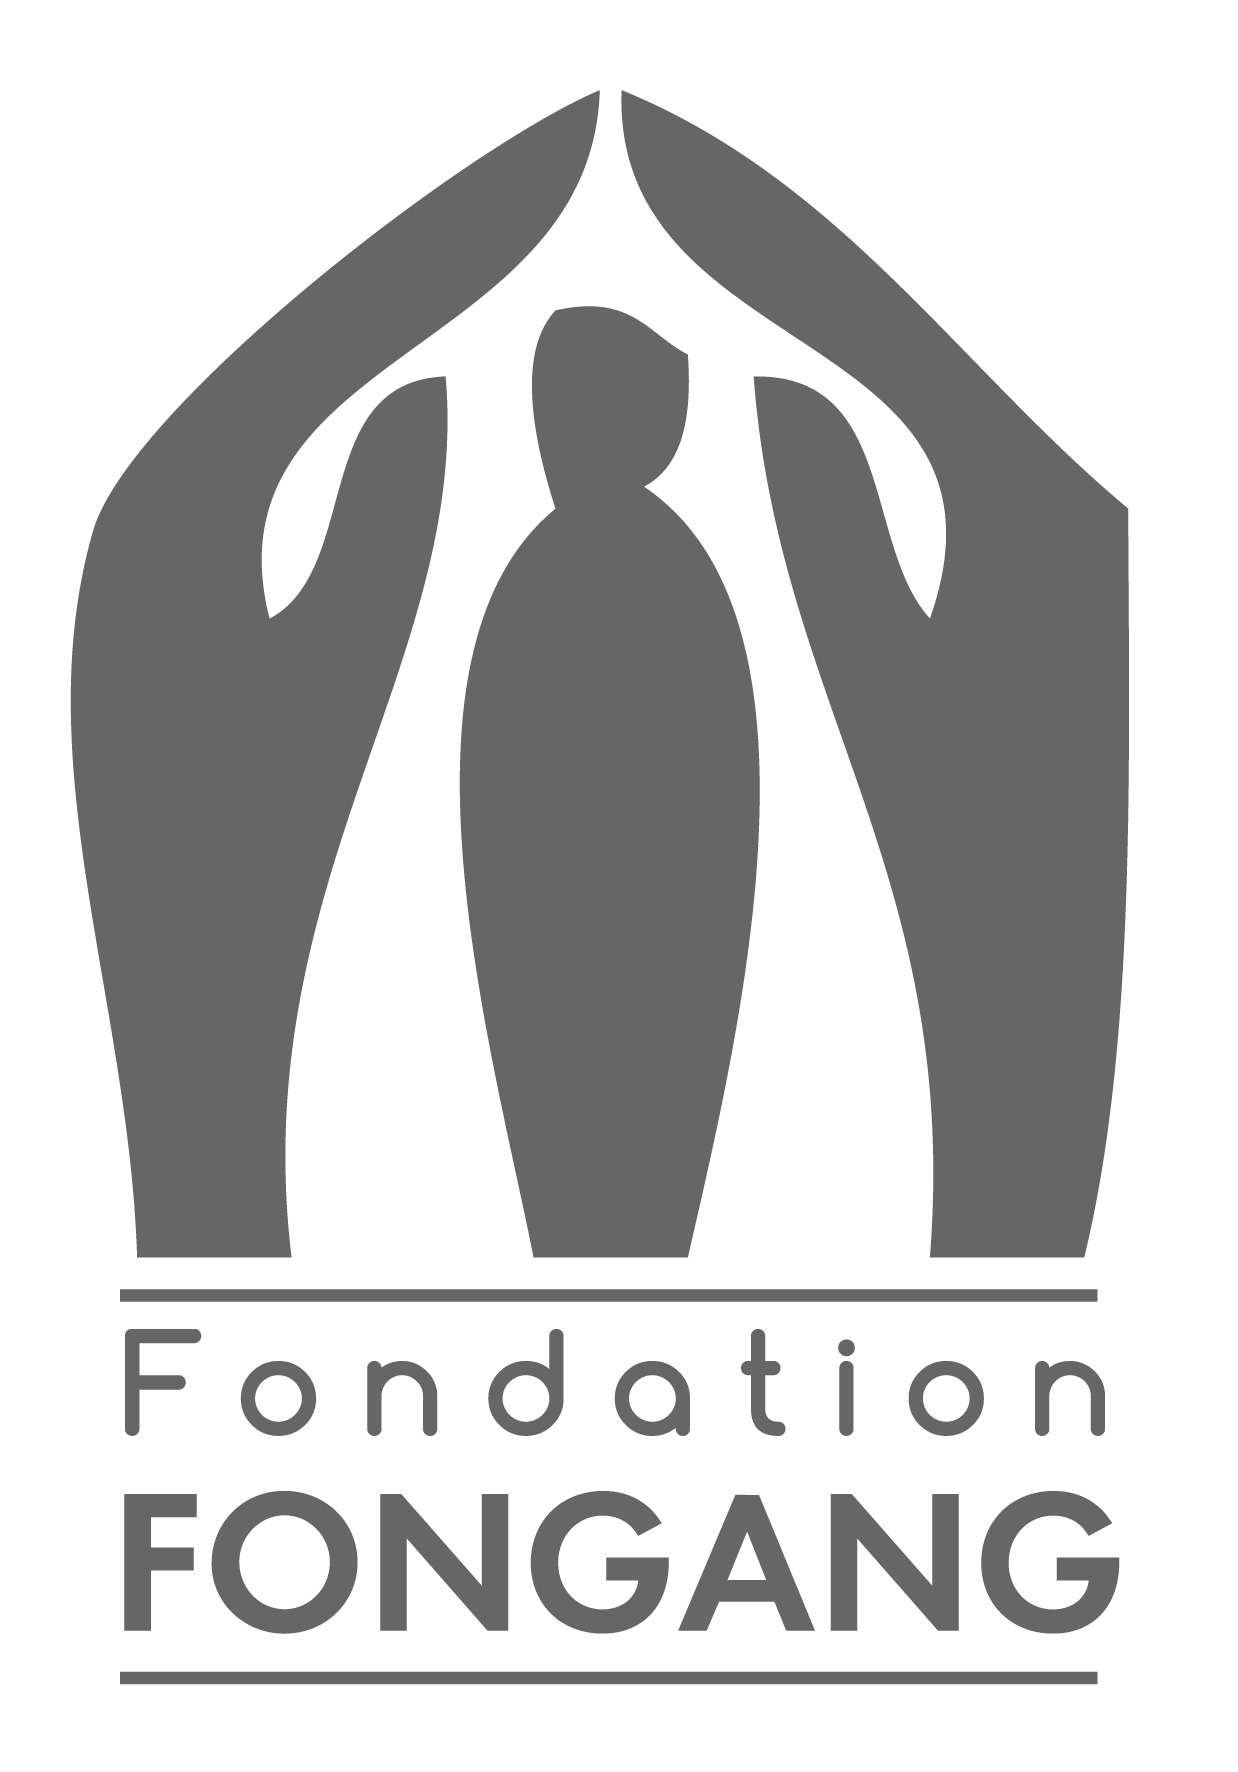 Association - Fondation Fongang